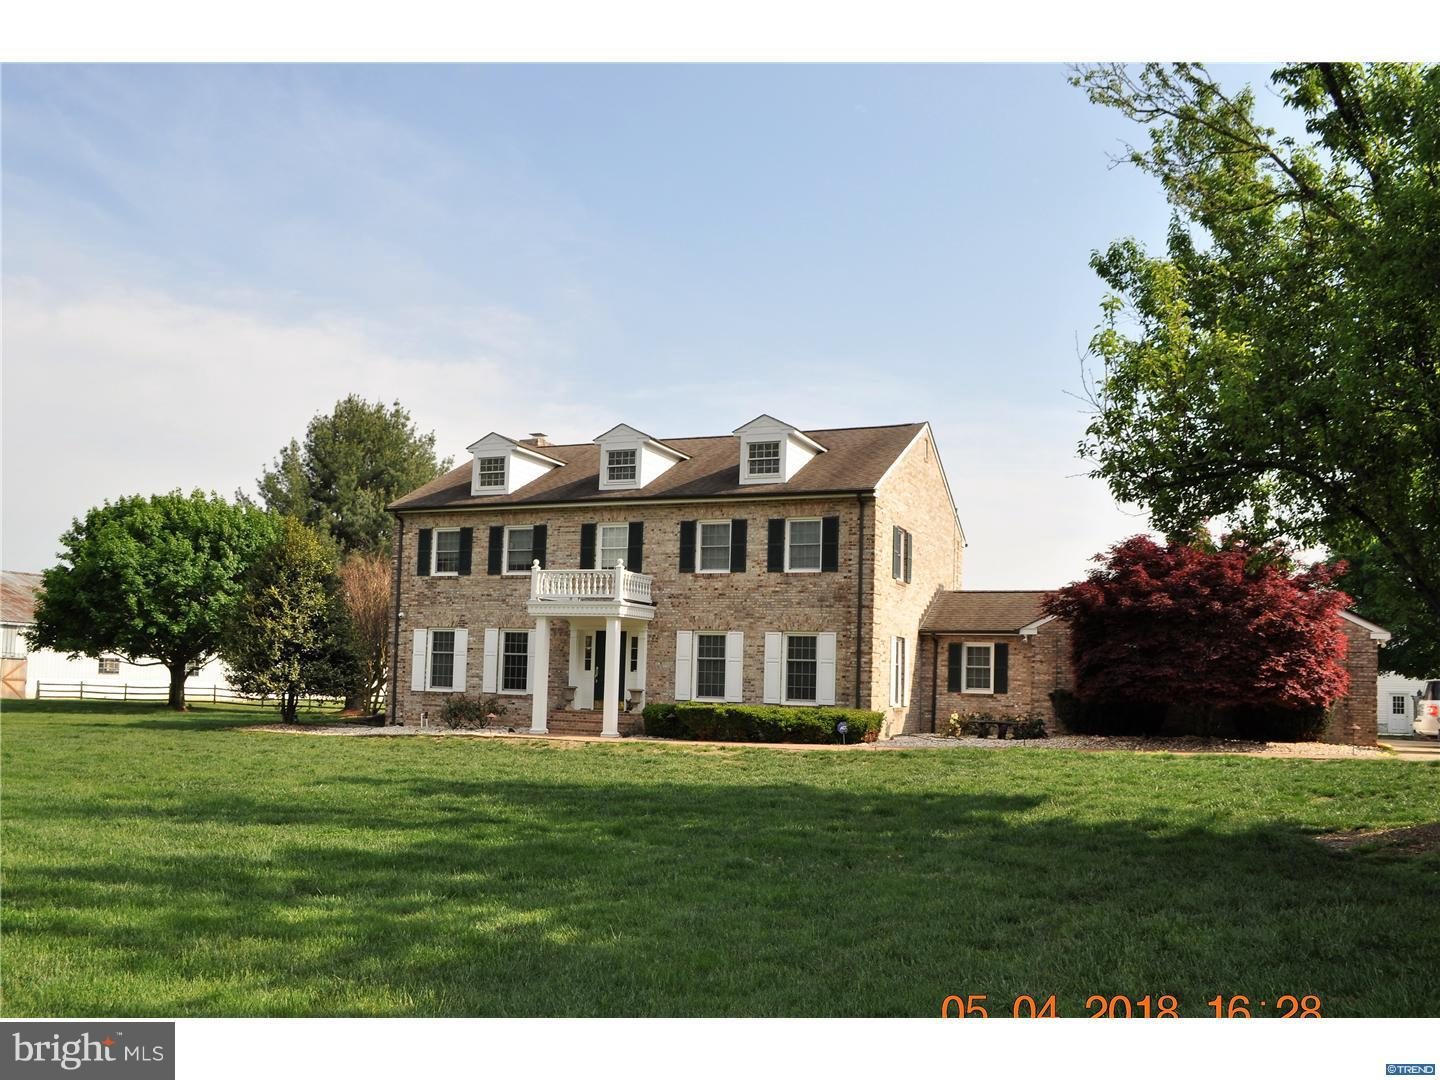 One of a kind Horse lovers Dream Property. This stunning 4 bedroom, 4 1/2 bathroom Colonial Estate home is located in the desirable Appoquinimink School District and is situated on 20 + acres of property that includes 2 sub-dividable parcels of 11 acres (tax parcel 1301800141 & 9.97 acres tax parcel 1301800142) that backs to State of Delaware wildlife refuge area. at the rear of the property is a beautiful pond perfect for sitting out and enjoying all the wildlife. This property has an inground pool, 6 stall barn that includes a spacious heated tack room with bathroom, washer & dryer plus a large run-in and a wash stall. Fenced pastures. There is a beautiful 80x168 indoor riding arena and well-lighted outdoor riding area with grass footing, a large workshop barn that includes 2 completely finished off garage spaces.  On the opposite side of the workshop building you will find four additional garage spaces for tractor/equipment storage. The workshop building also includes 2, efficiency apartments.  A detached two-stall heated garage is situated near the house.  Within the stall barn, there is a spectacular hay storage area with the most stunning wood frame building design you will find.  Words cannot describe all that this property has to offer and its stunning beauty.  Deer and wild turkey abound.  Trails in the 7 acres of woods.  Large fenced dog kennel and about 2 acres of invisible fencing.